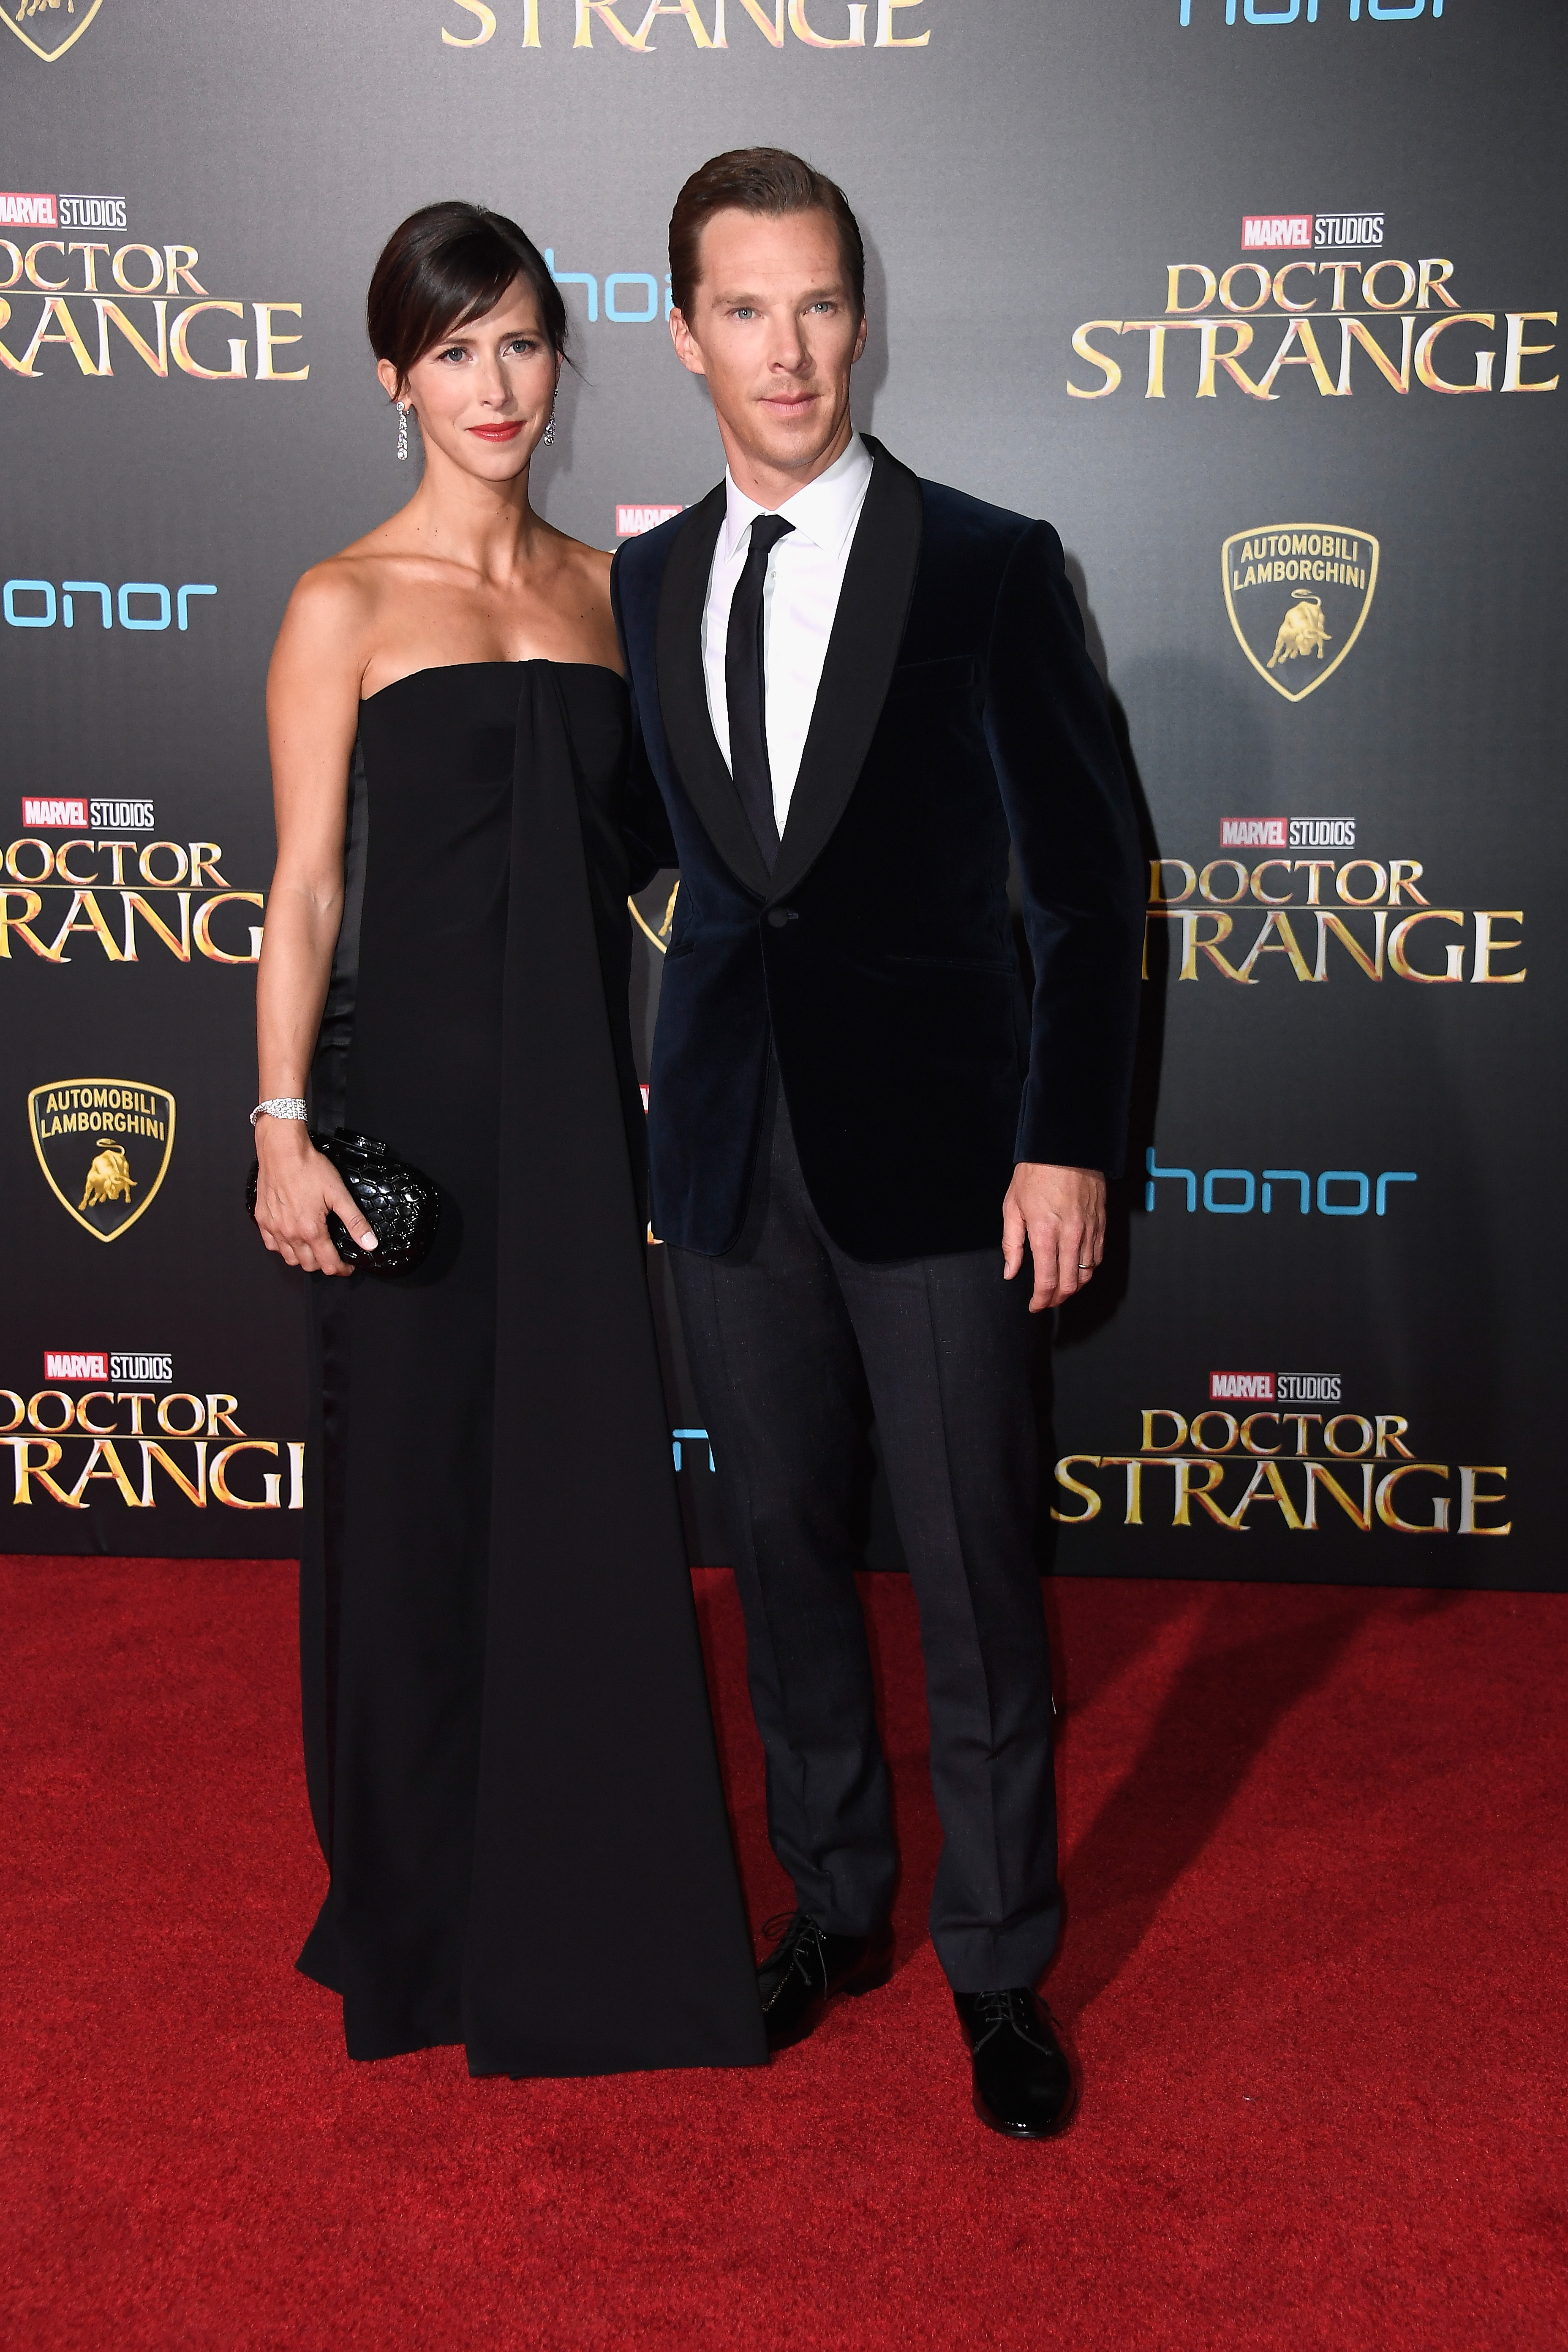 Benedict-Cumberbatch-and-wife-Sophie-Hunter-Premiere-Of-Disney-And-Marvel-Studios-Doctor-Strange-on-October-20-2016-in-Hollywood